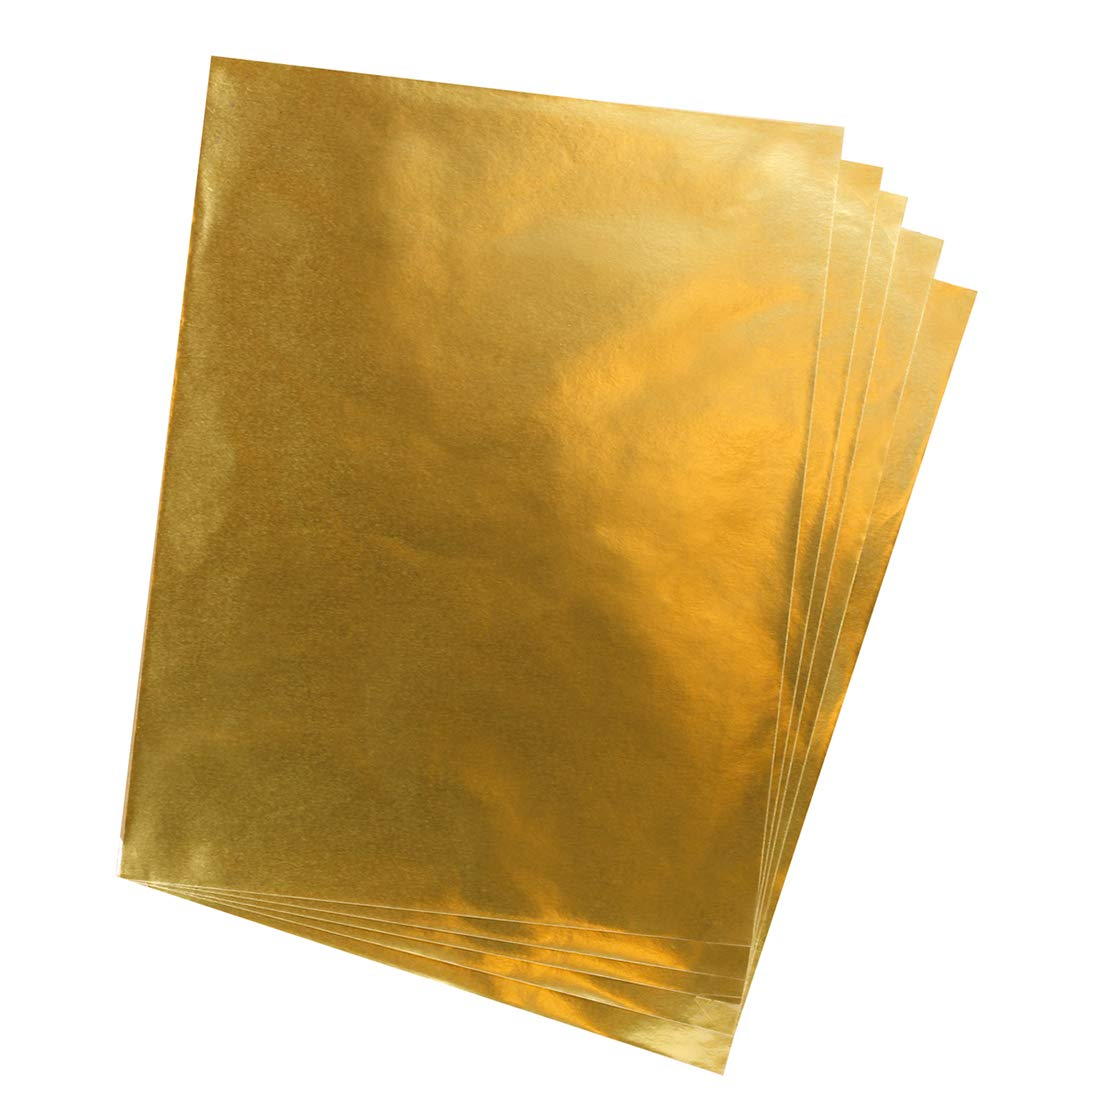 Hygloss Products Metallic Foil Paper Sheets – 10 x 13 Inch, 50 Sheets – Gold